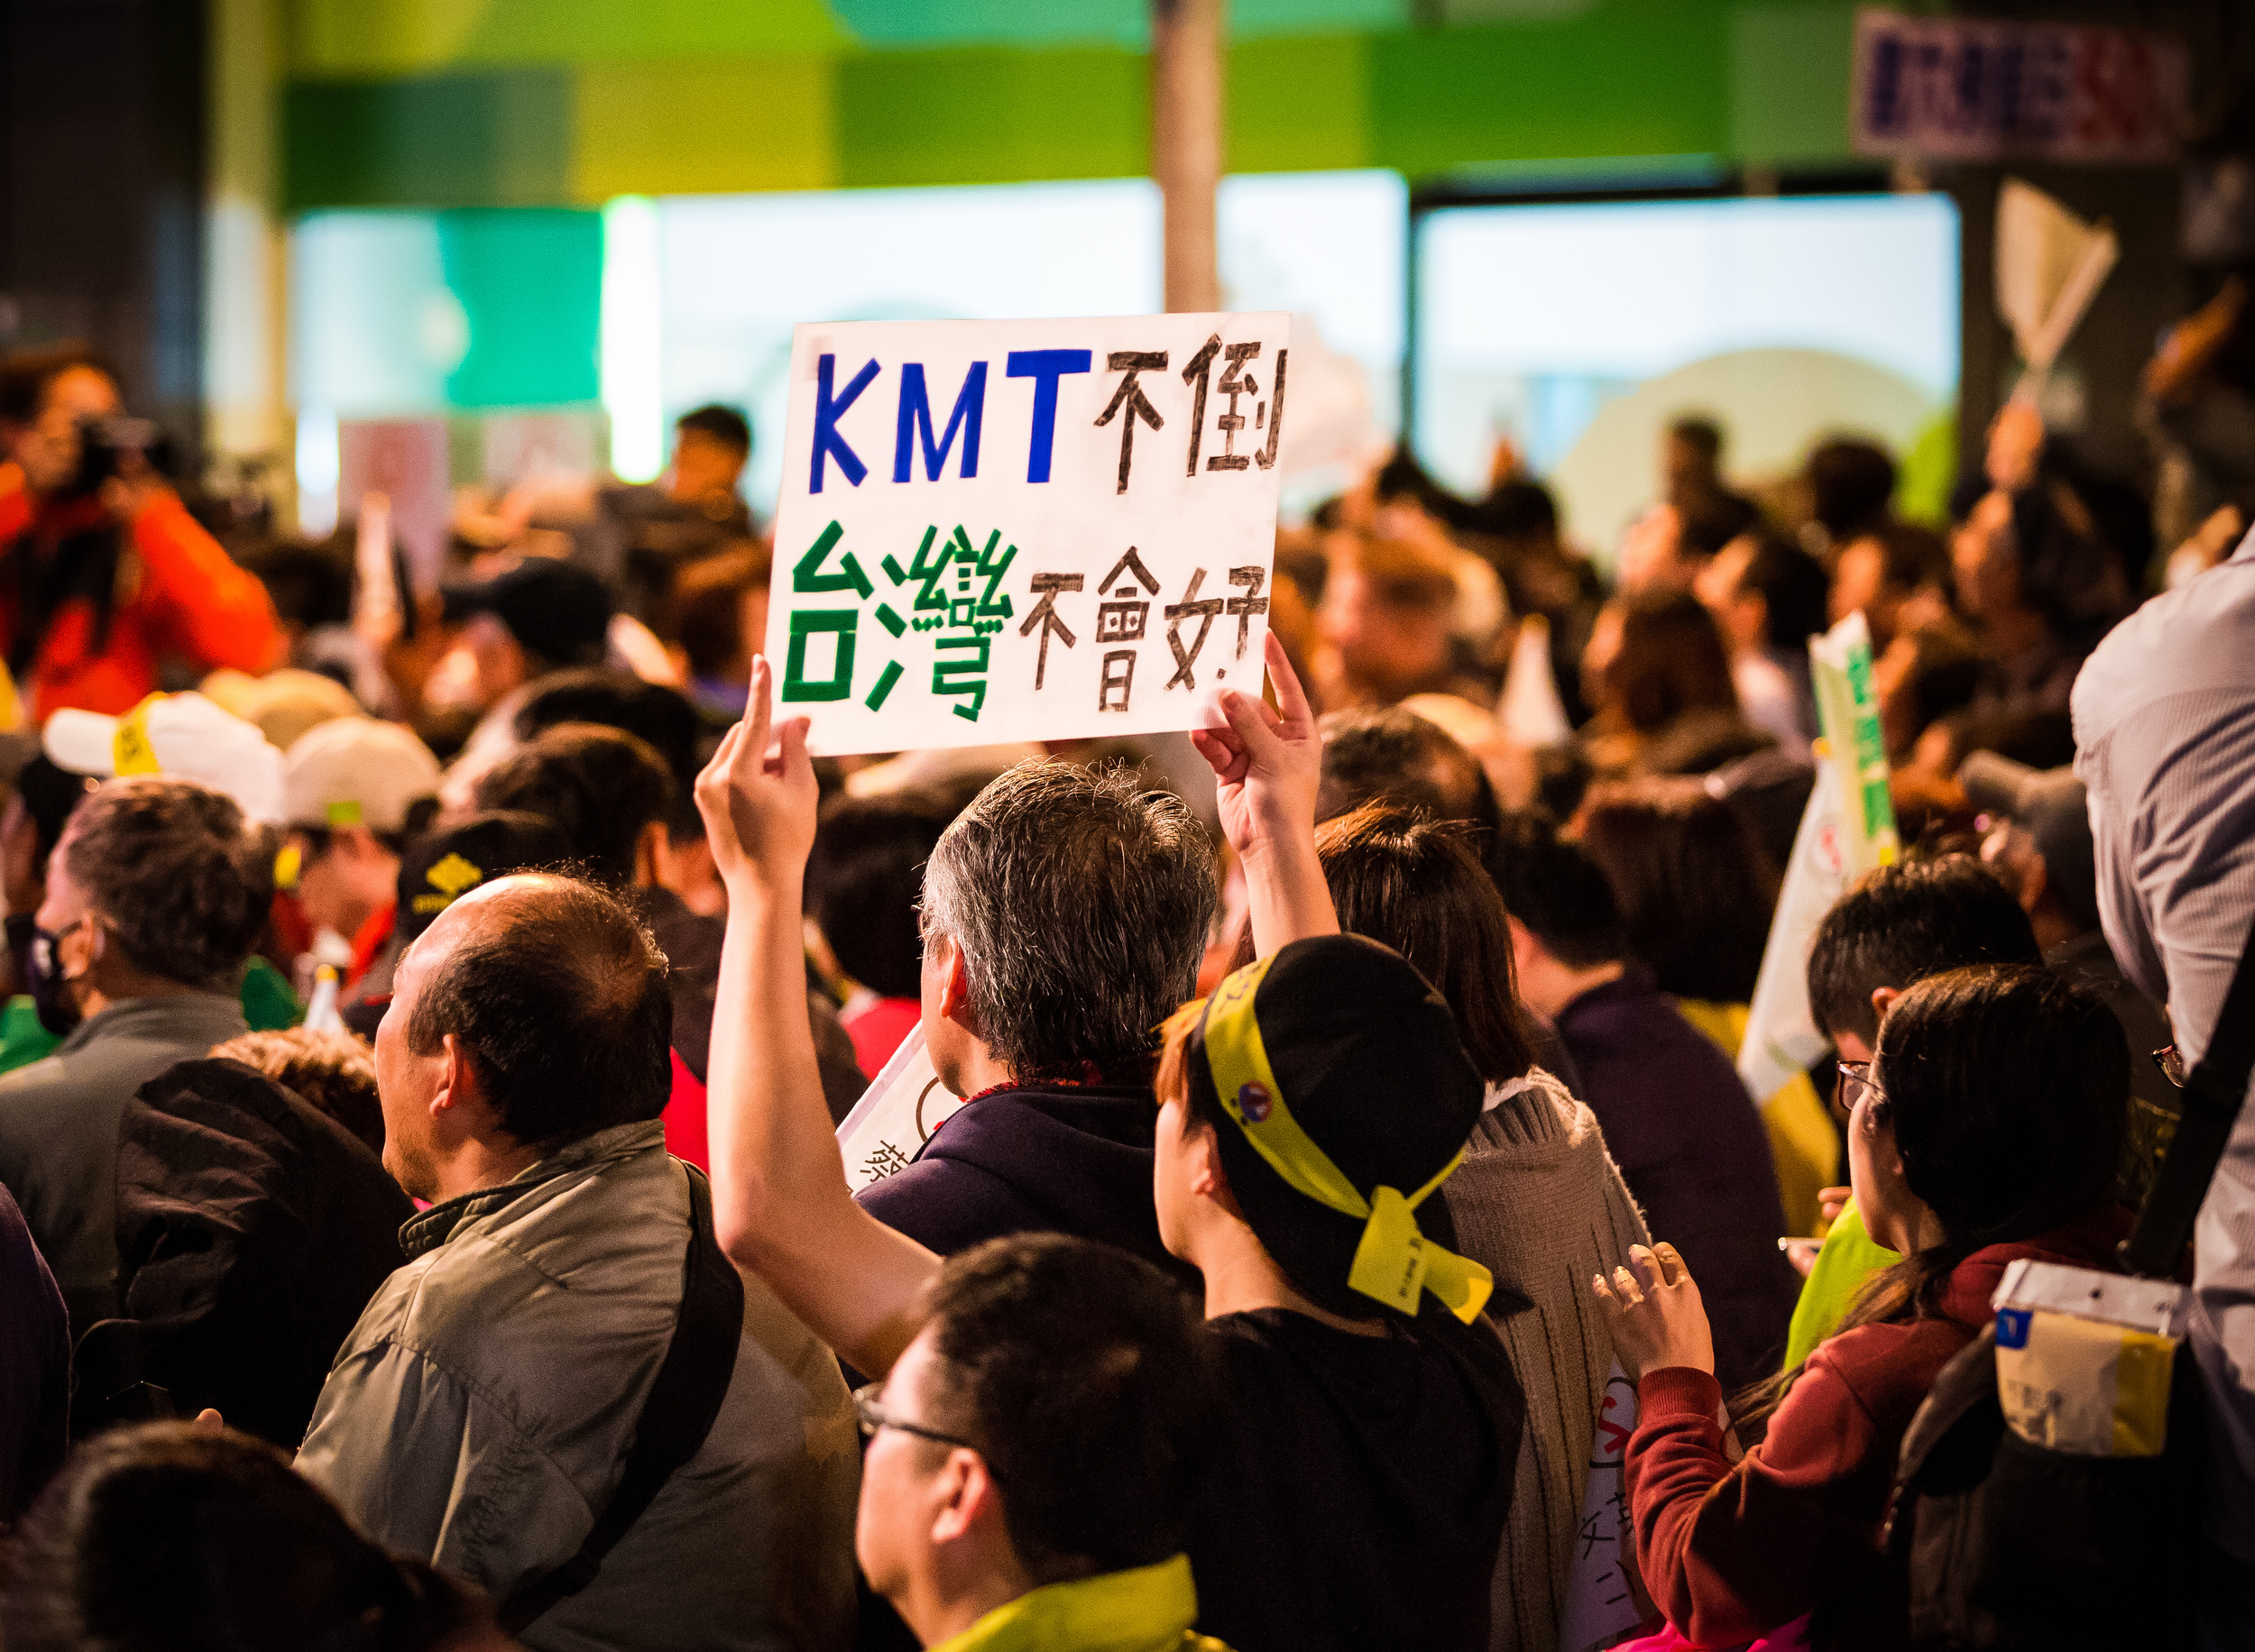 If the KMT isn't defeated, Taiwan cannot get better.